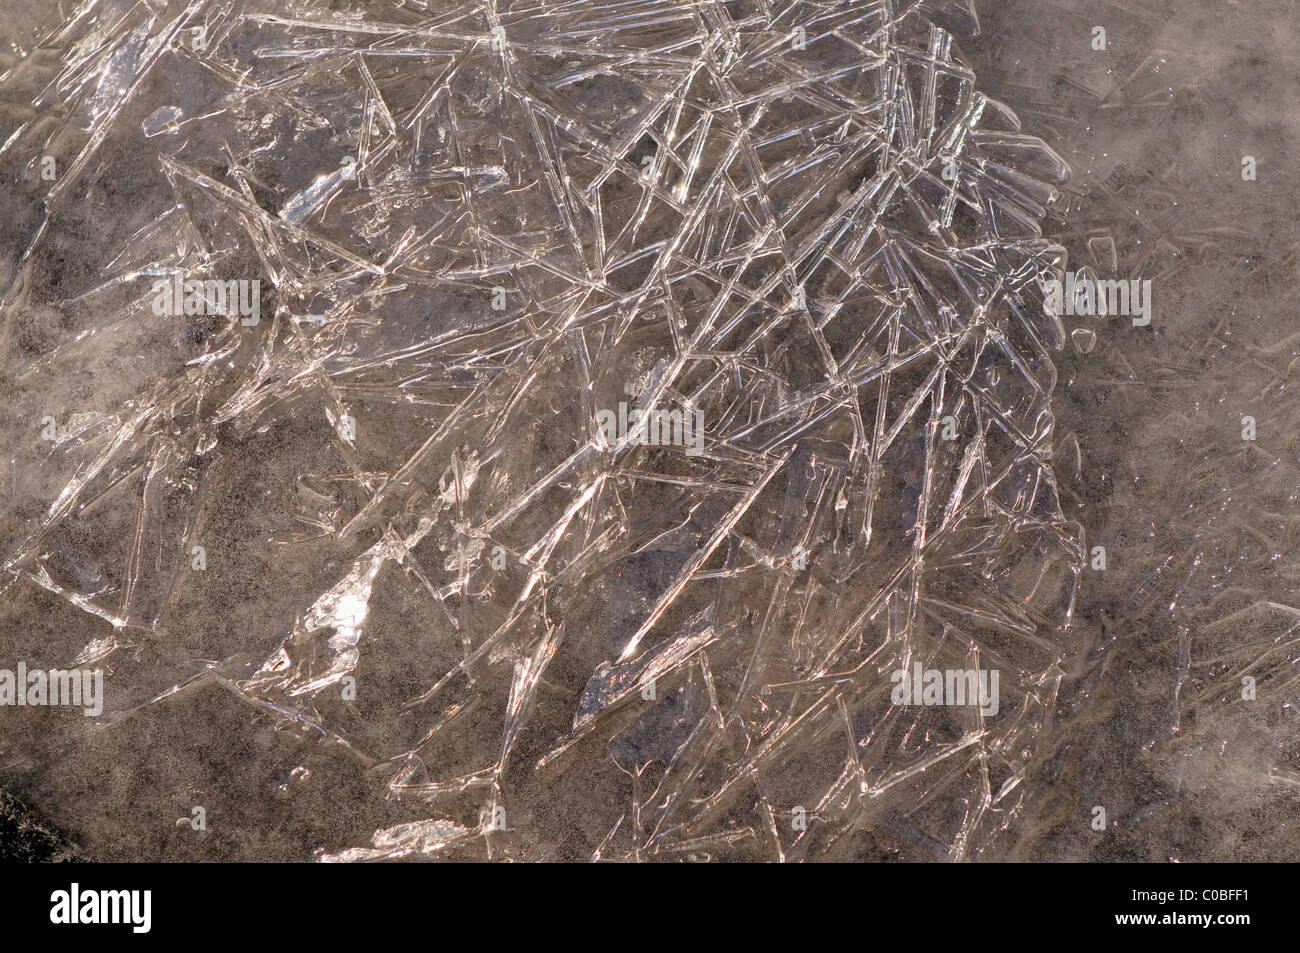 Ice crystals - Stock Image